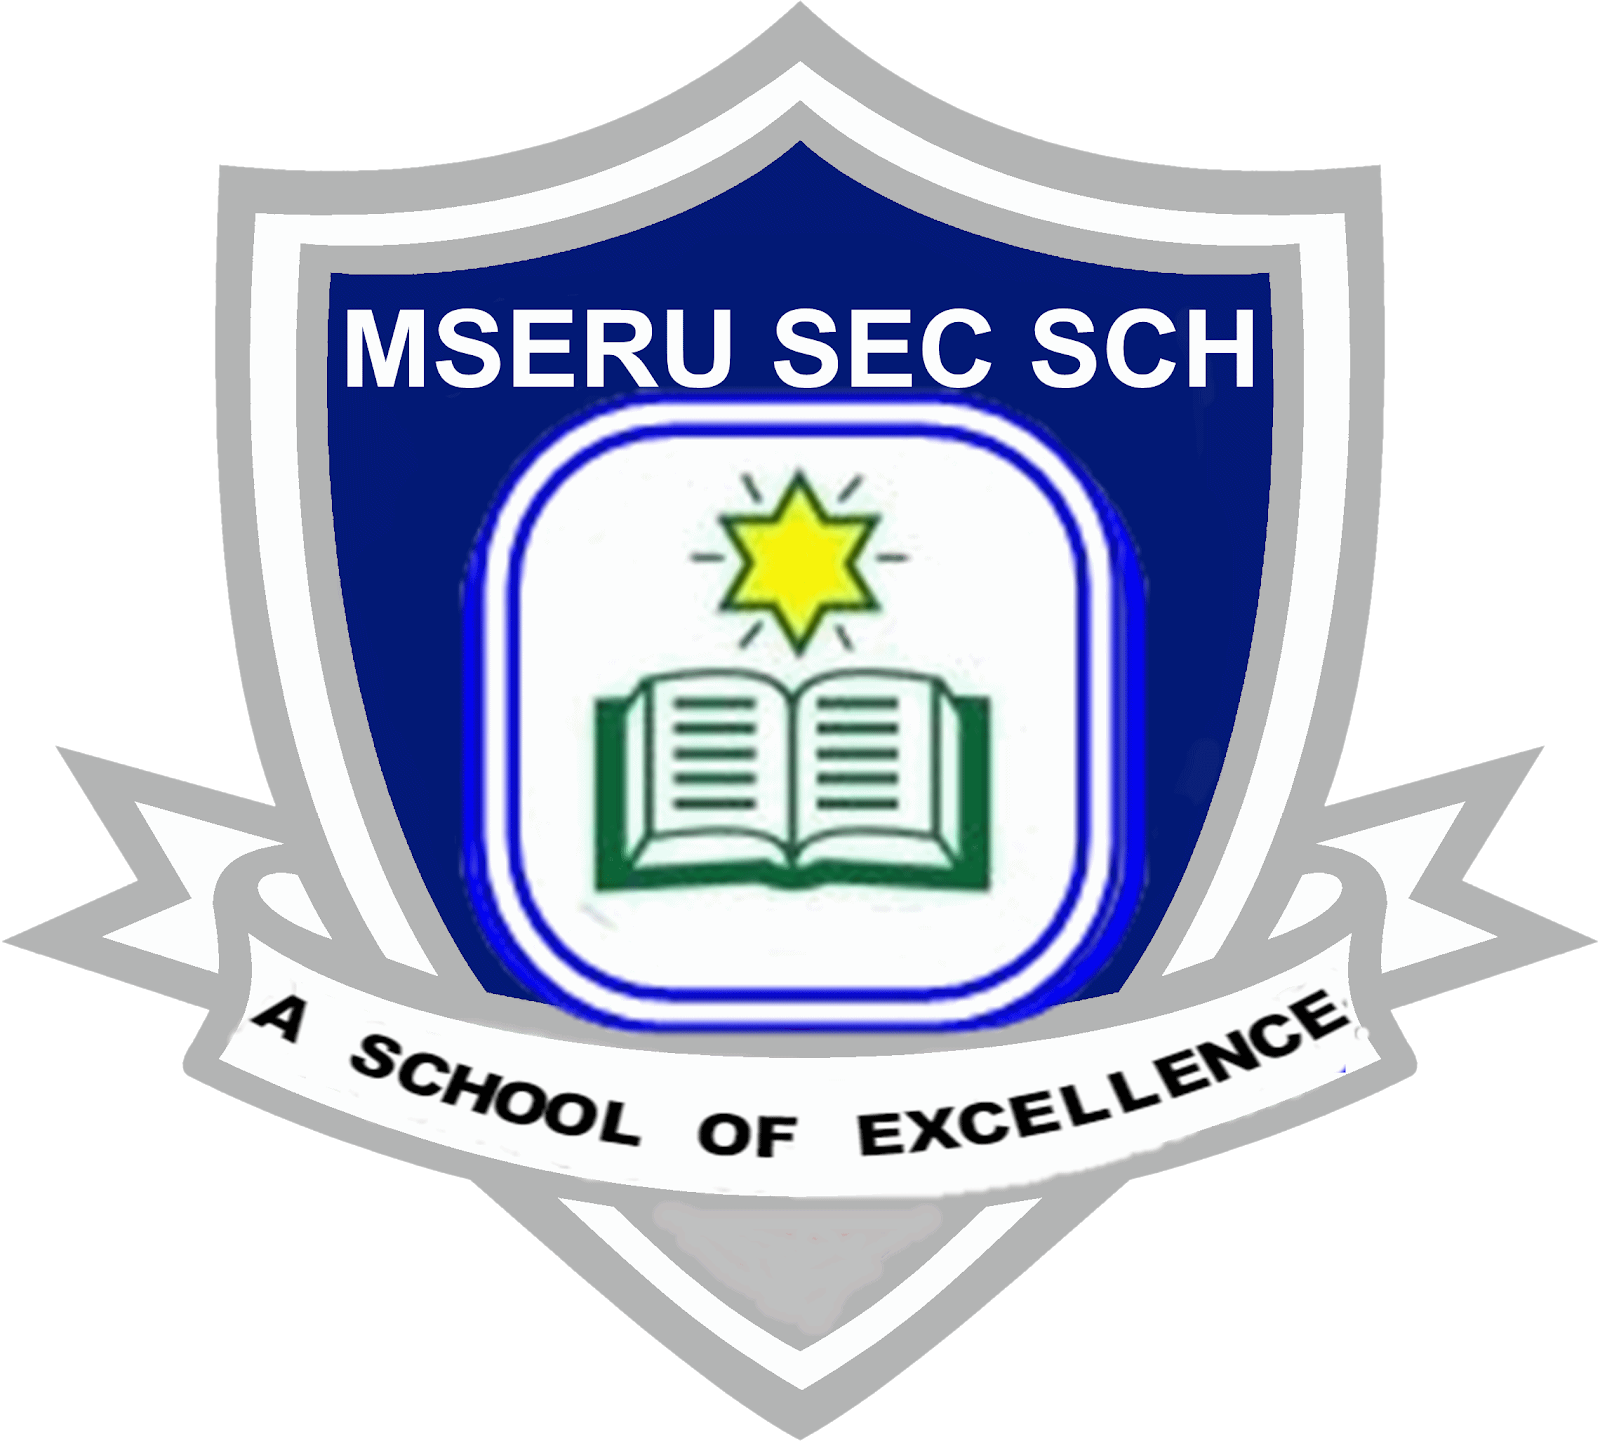 Mseru Secondary School